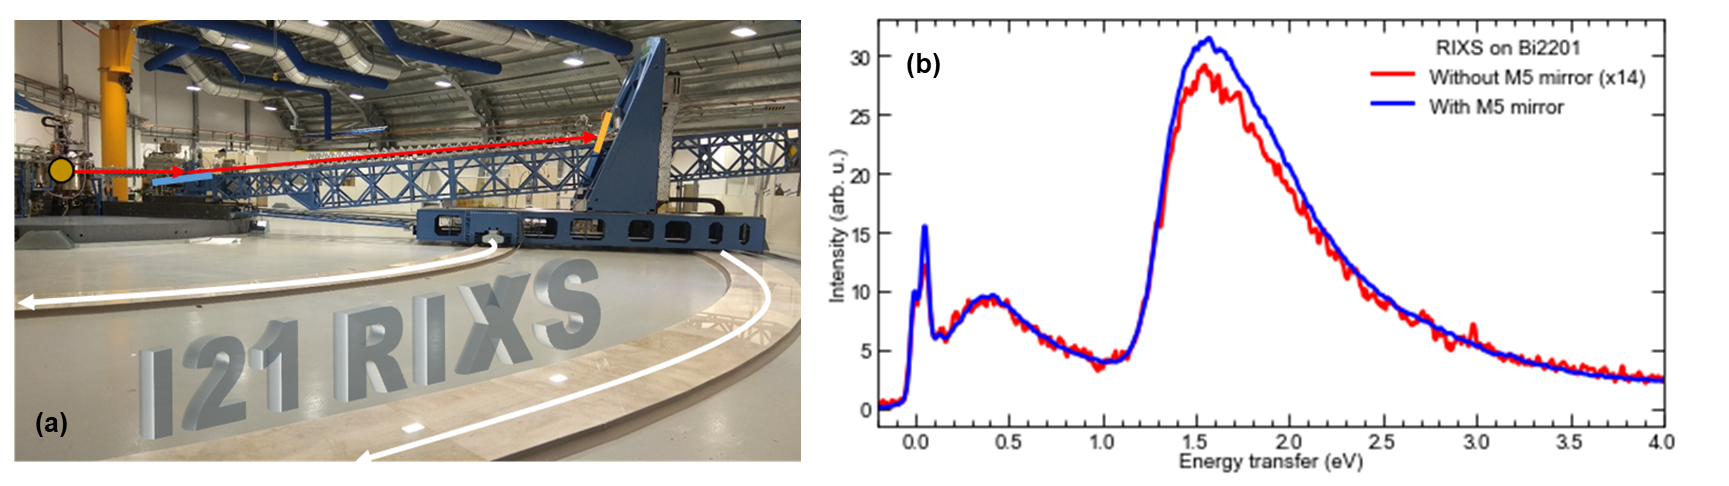 Fig 1. (a): RIXS spectrometer at I21. (b) Comparison of RIXS signal from a real sample (Bi2201) with and without the collecting mirror.